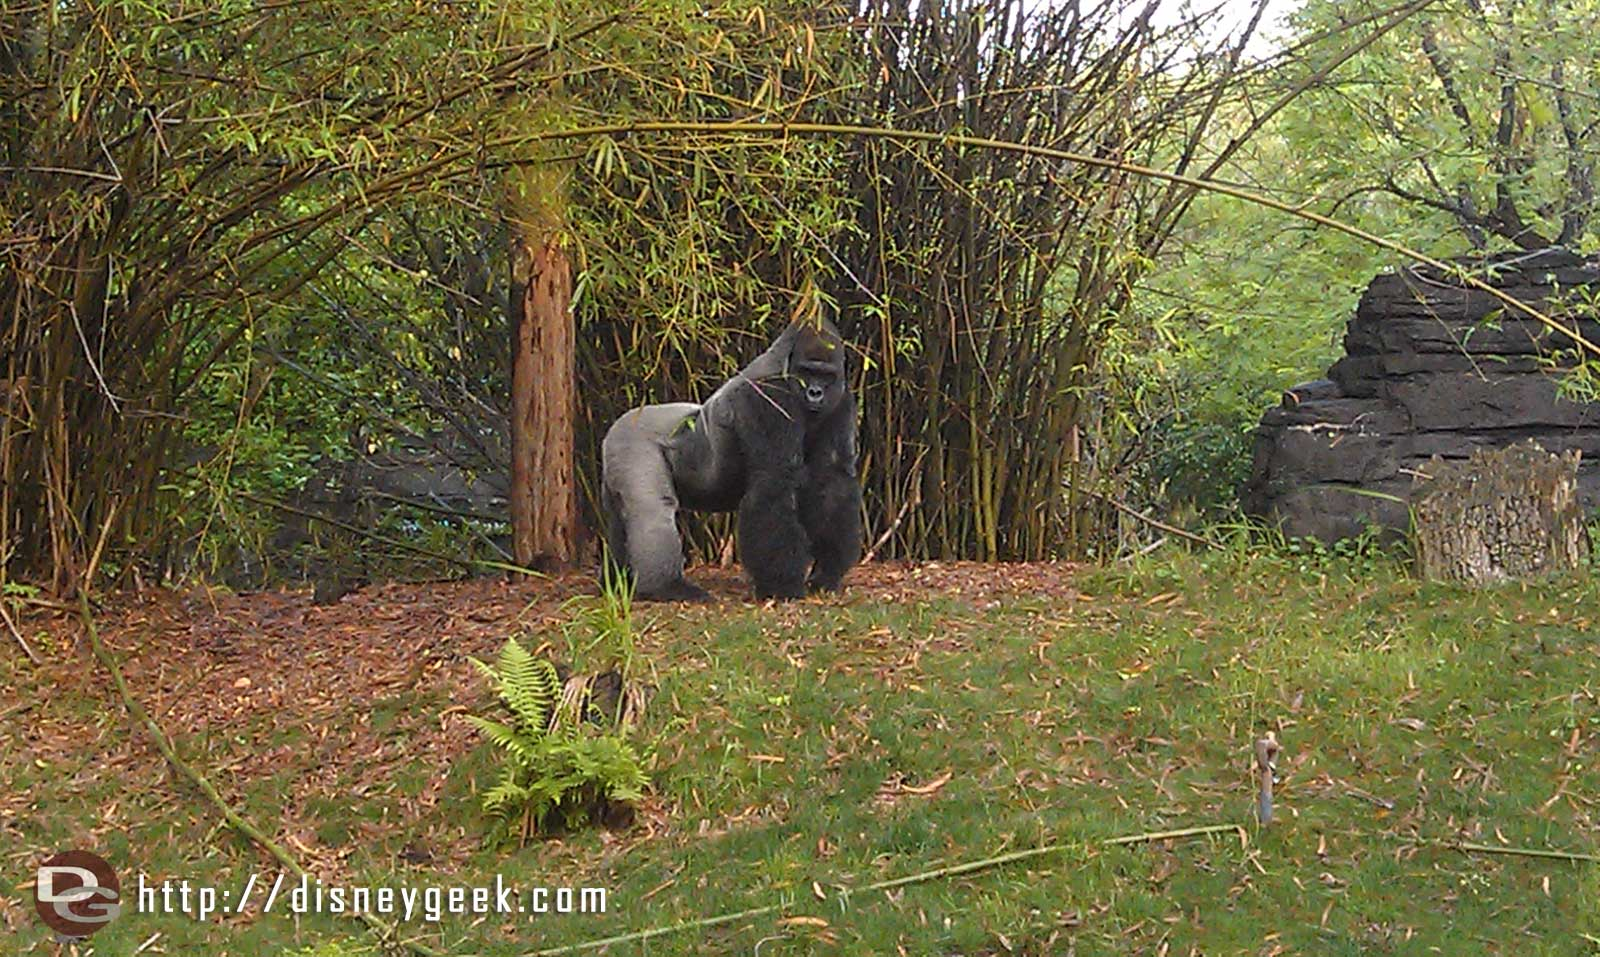 A male silverback gorilla in Pangani Forest